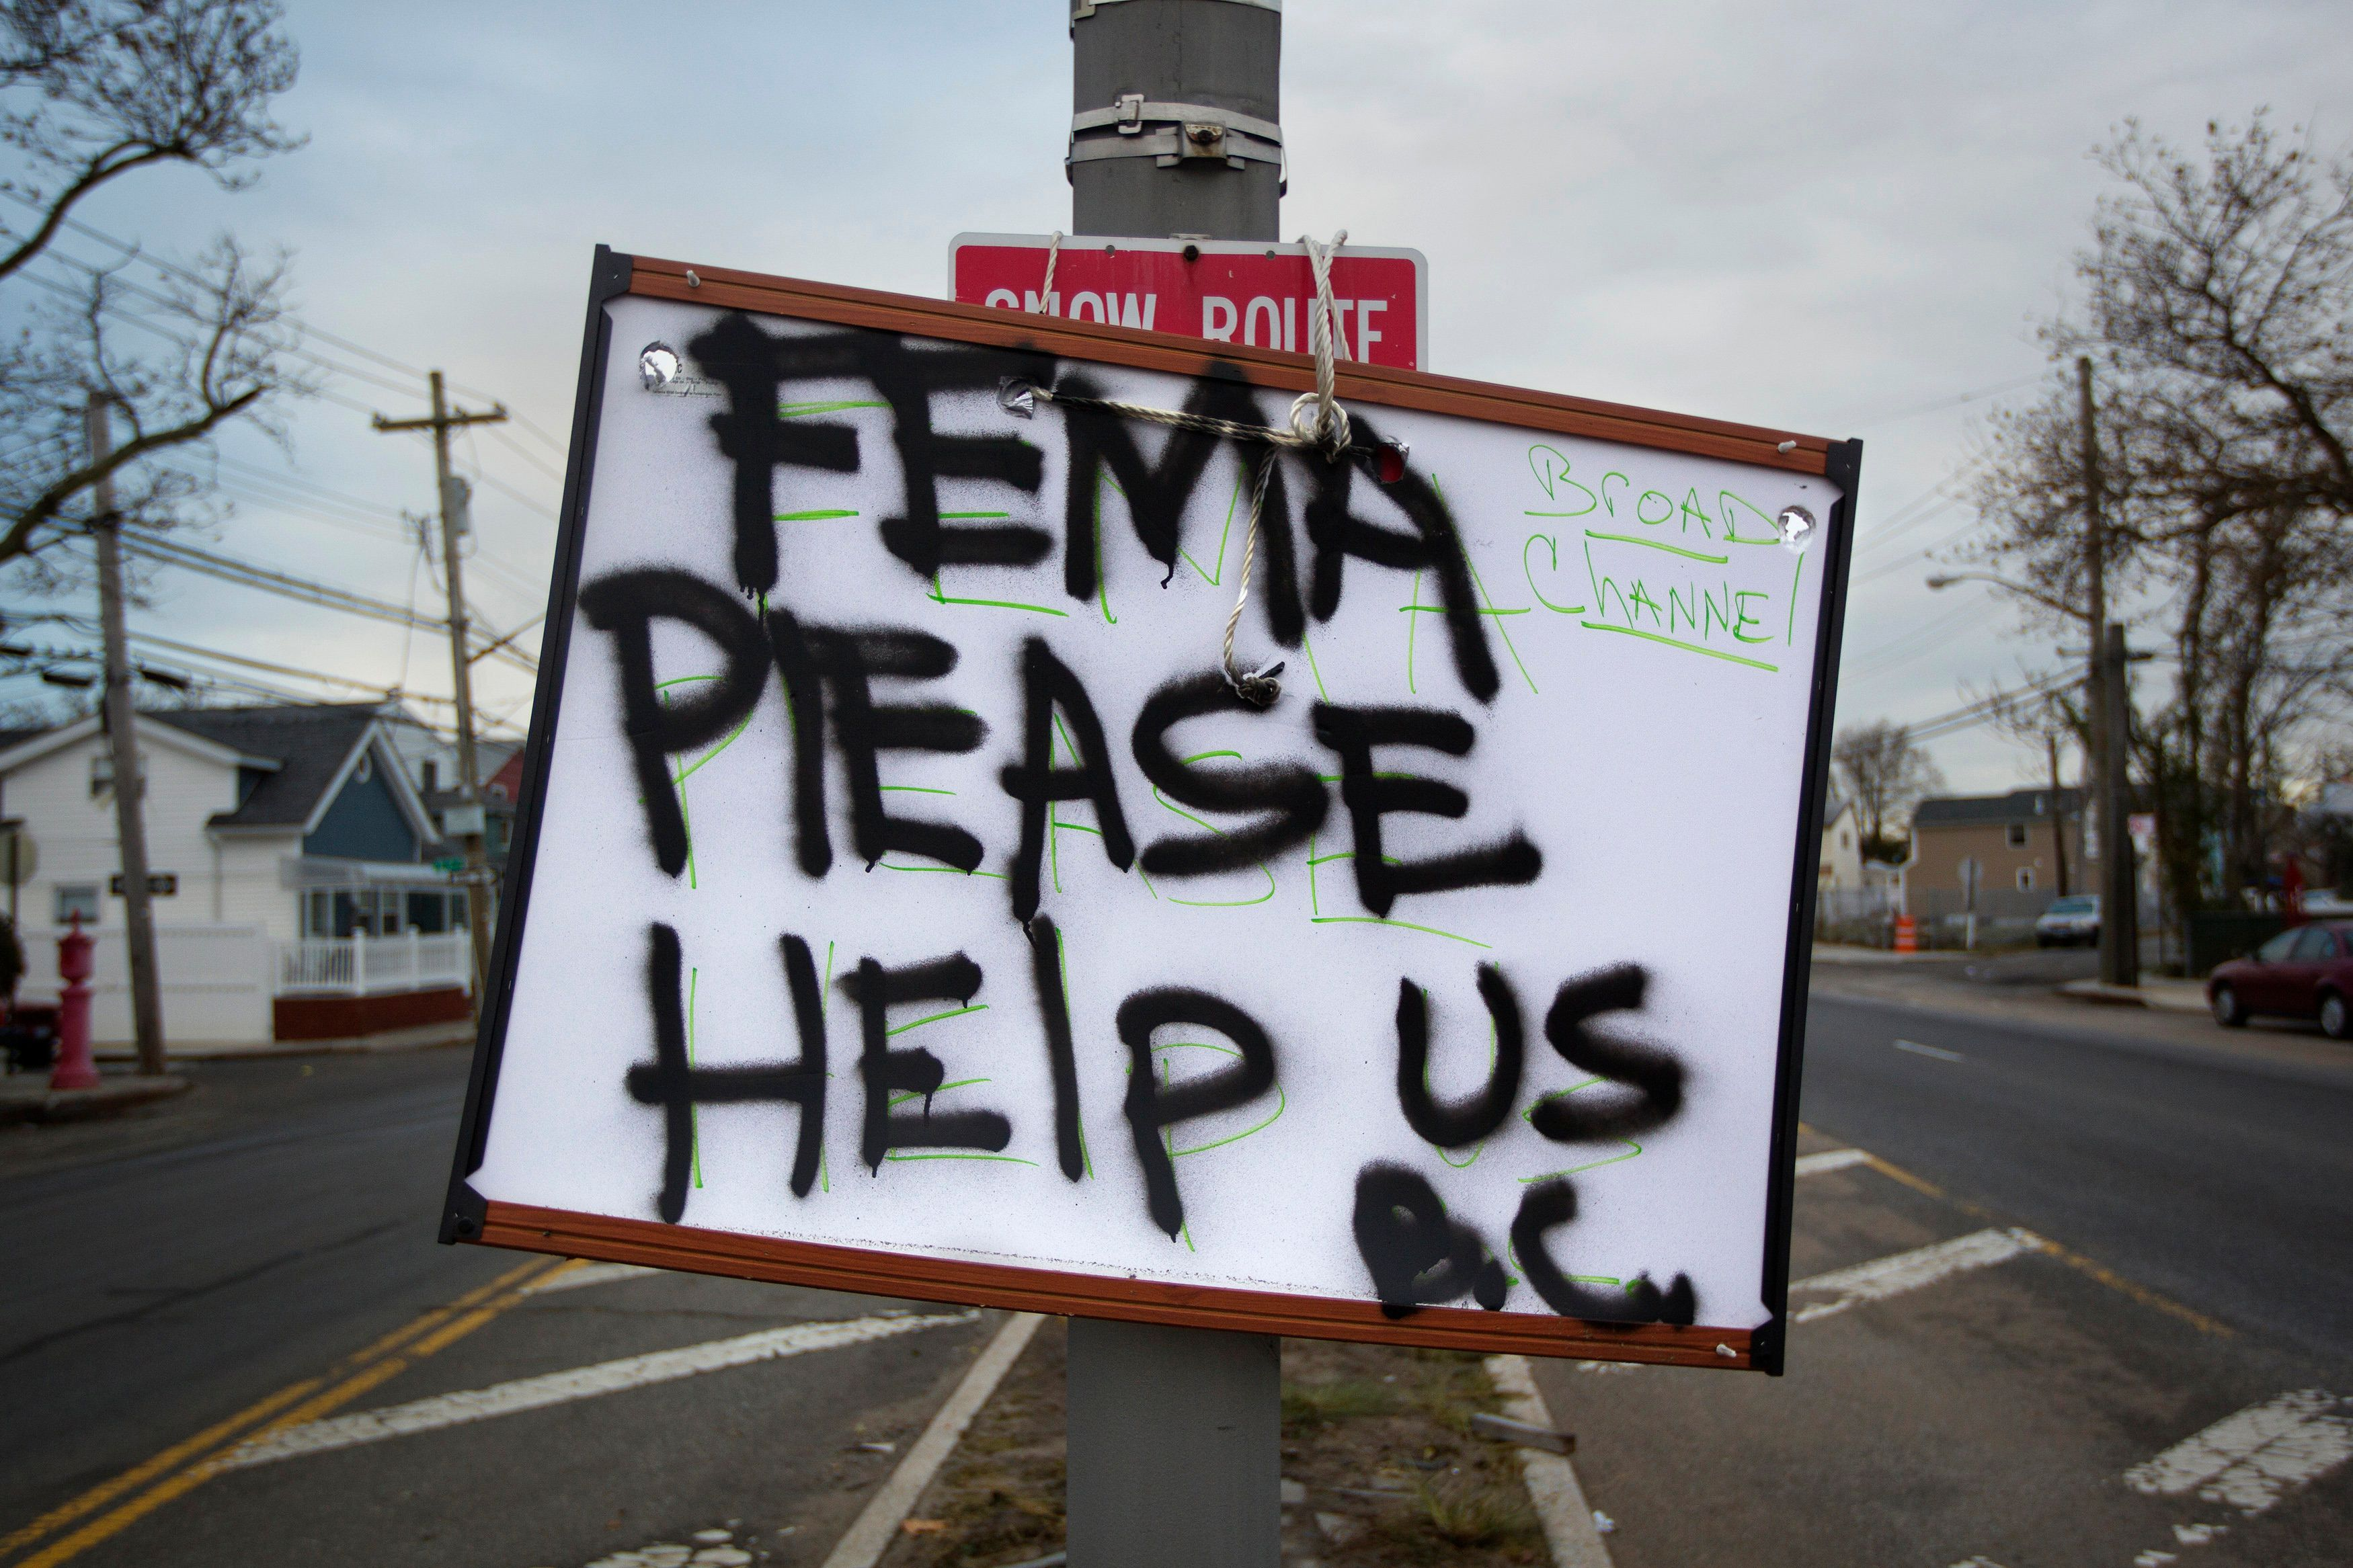 A sign asking for help from FEMA (Federal Emergency Management Agency) is seen in the BroadChannel section of the Queens borough of New York November 2, 2012. Four days after superstorm Sandy smashed into the U.S. Northeast, rescuers on Friday were still discovering the extent of the death and devastation in New York and the New Jersey shore, and anger mounted over gasoline shortages, power outages and waits for relief supplies.    REUTERS/Shannon Stapleton (UNITED STATES - Tags: ENVIRONMENT DISASTER)